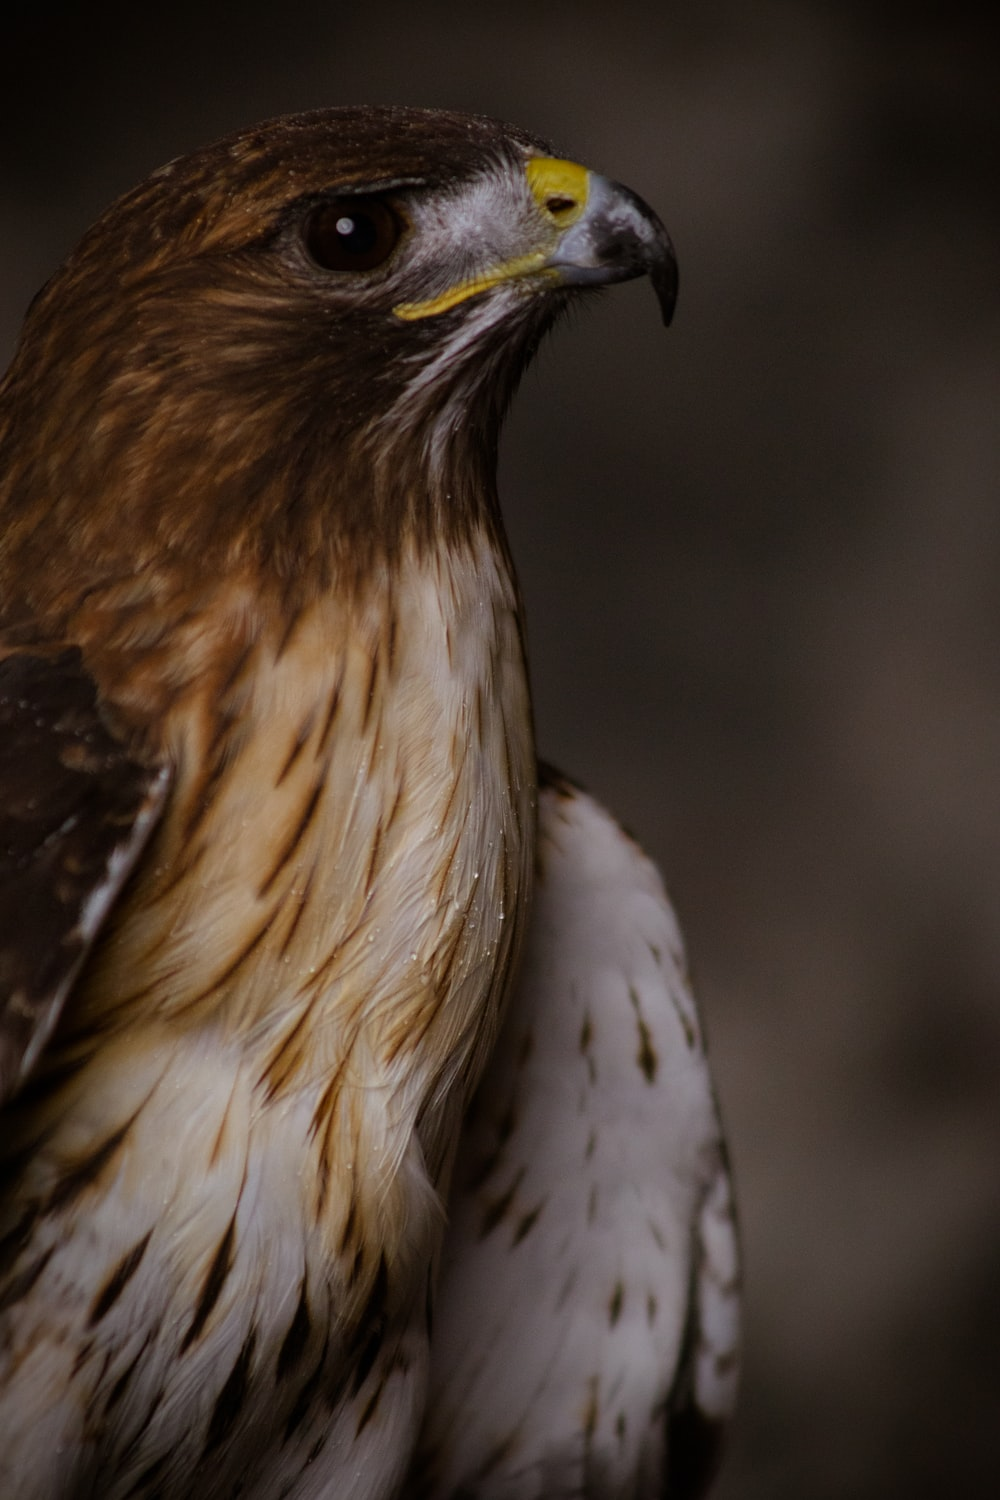 white and brown eagle in close up photography